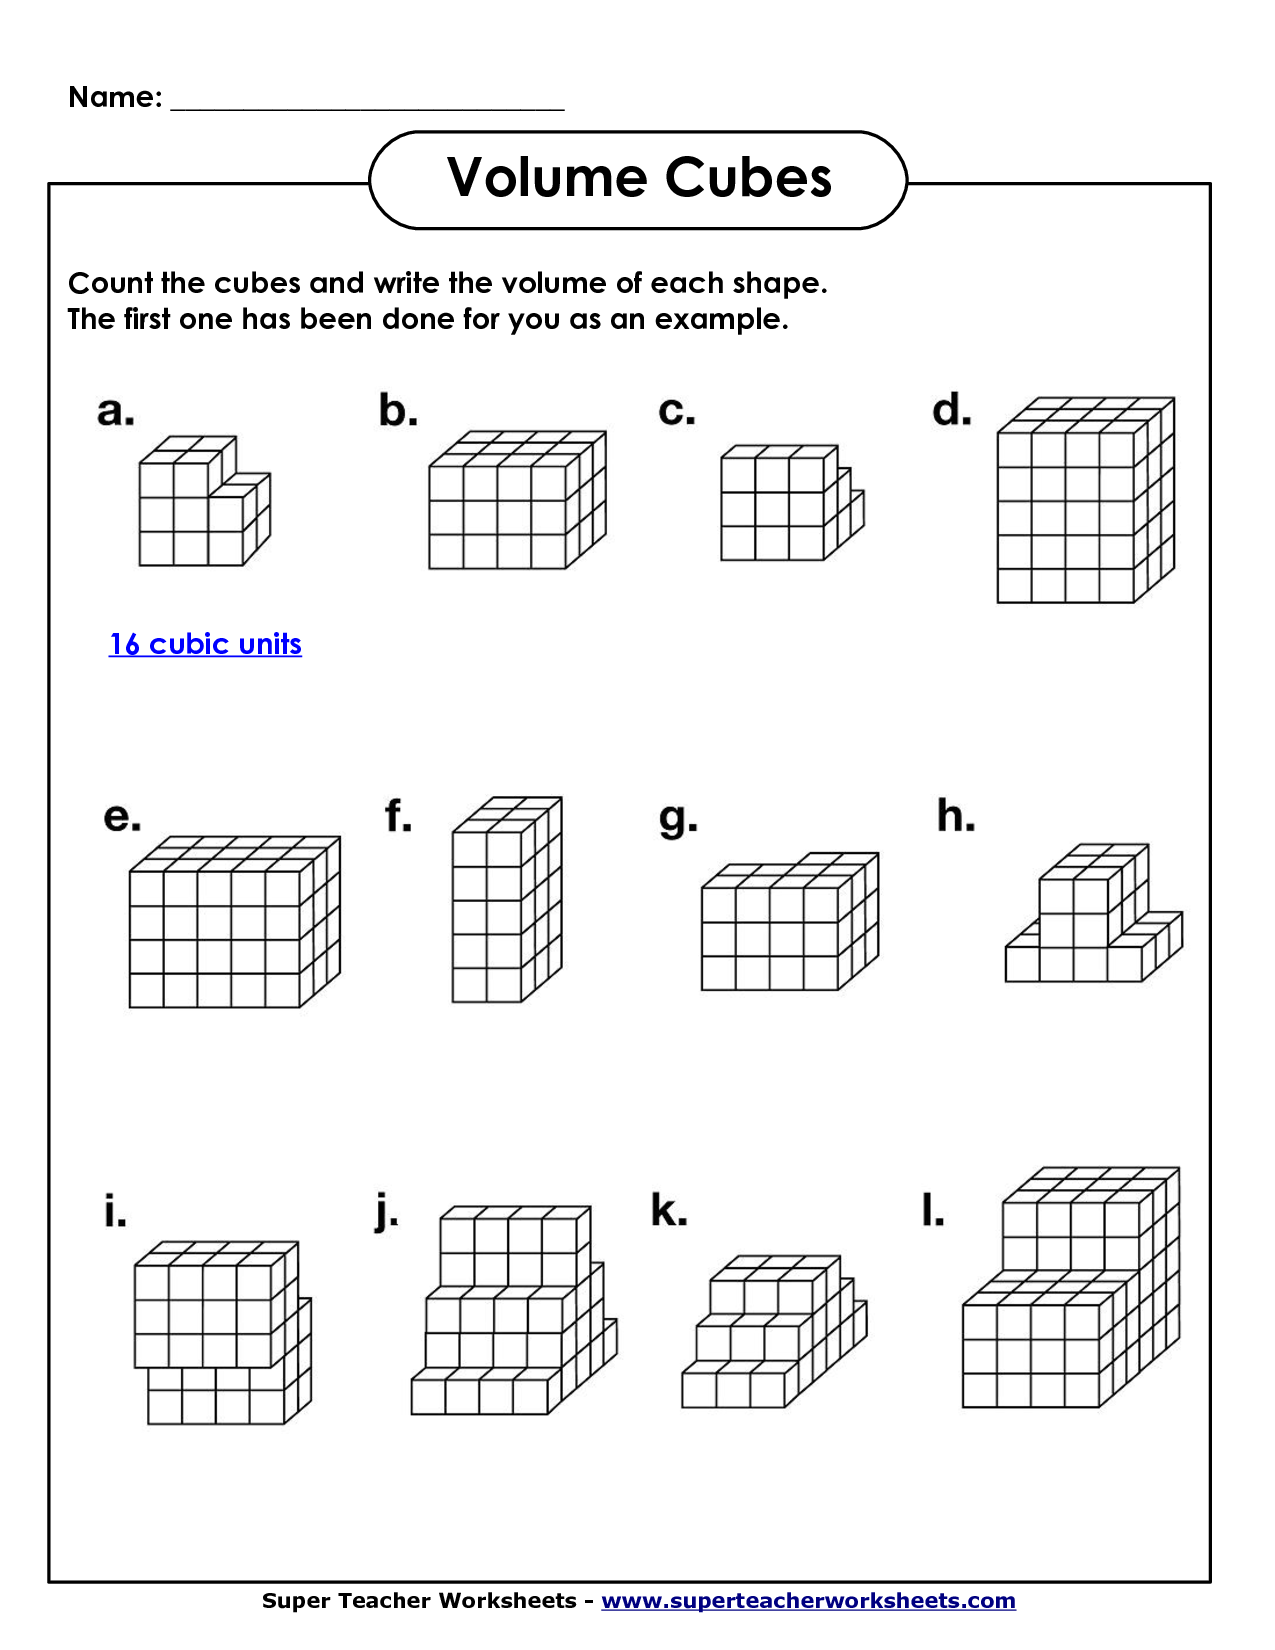 Worksheets Volume Counting Cubes Worksheet our 5 favorite prek math worksheets count cubes and student volume geometry with cubic units pdf